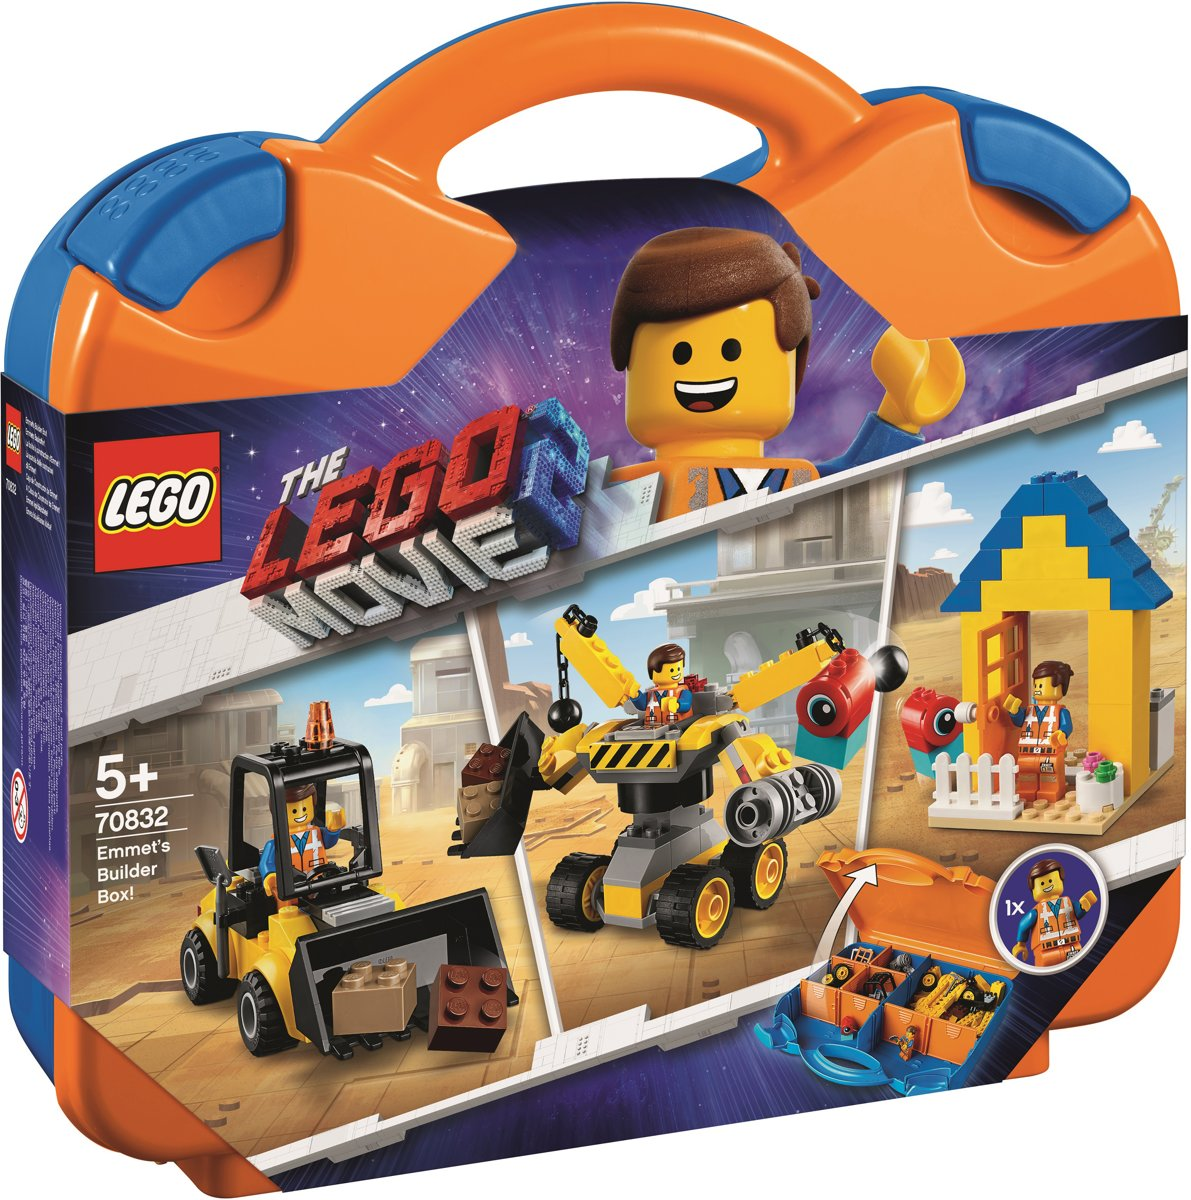 LEGO The Movie 2 Emmets Bouwdoos! - 70832